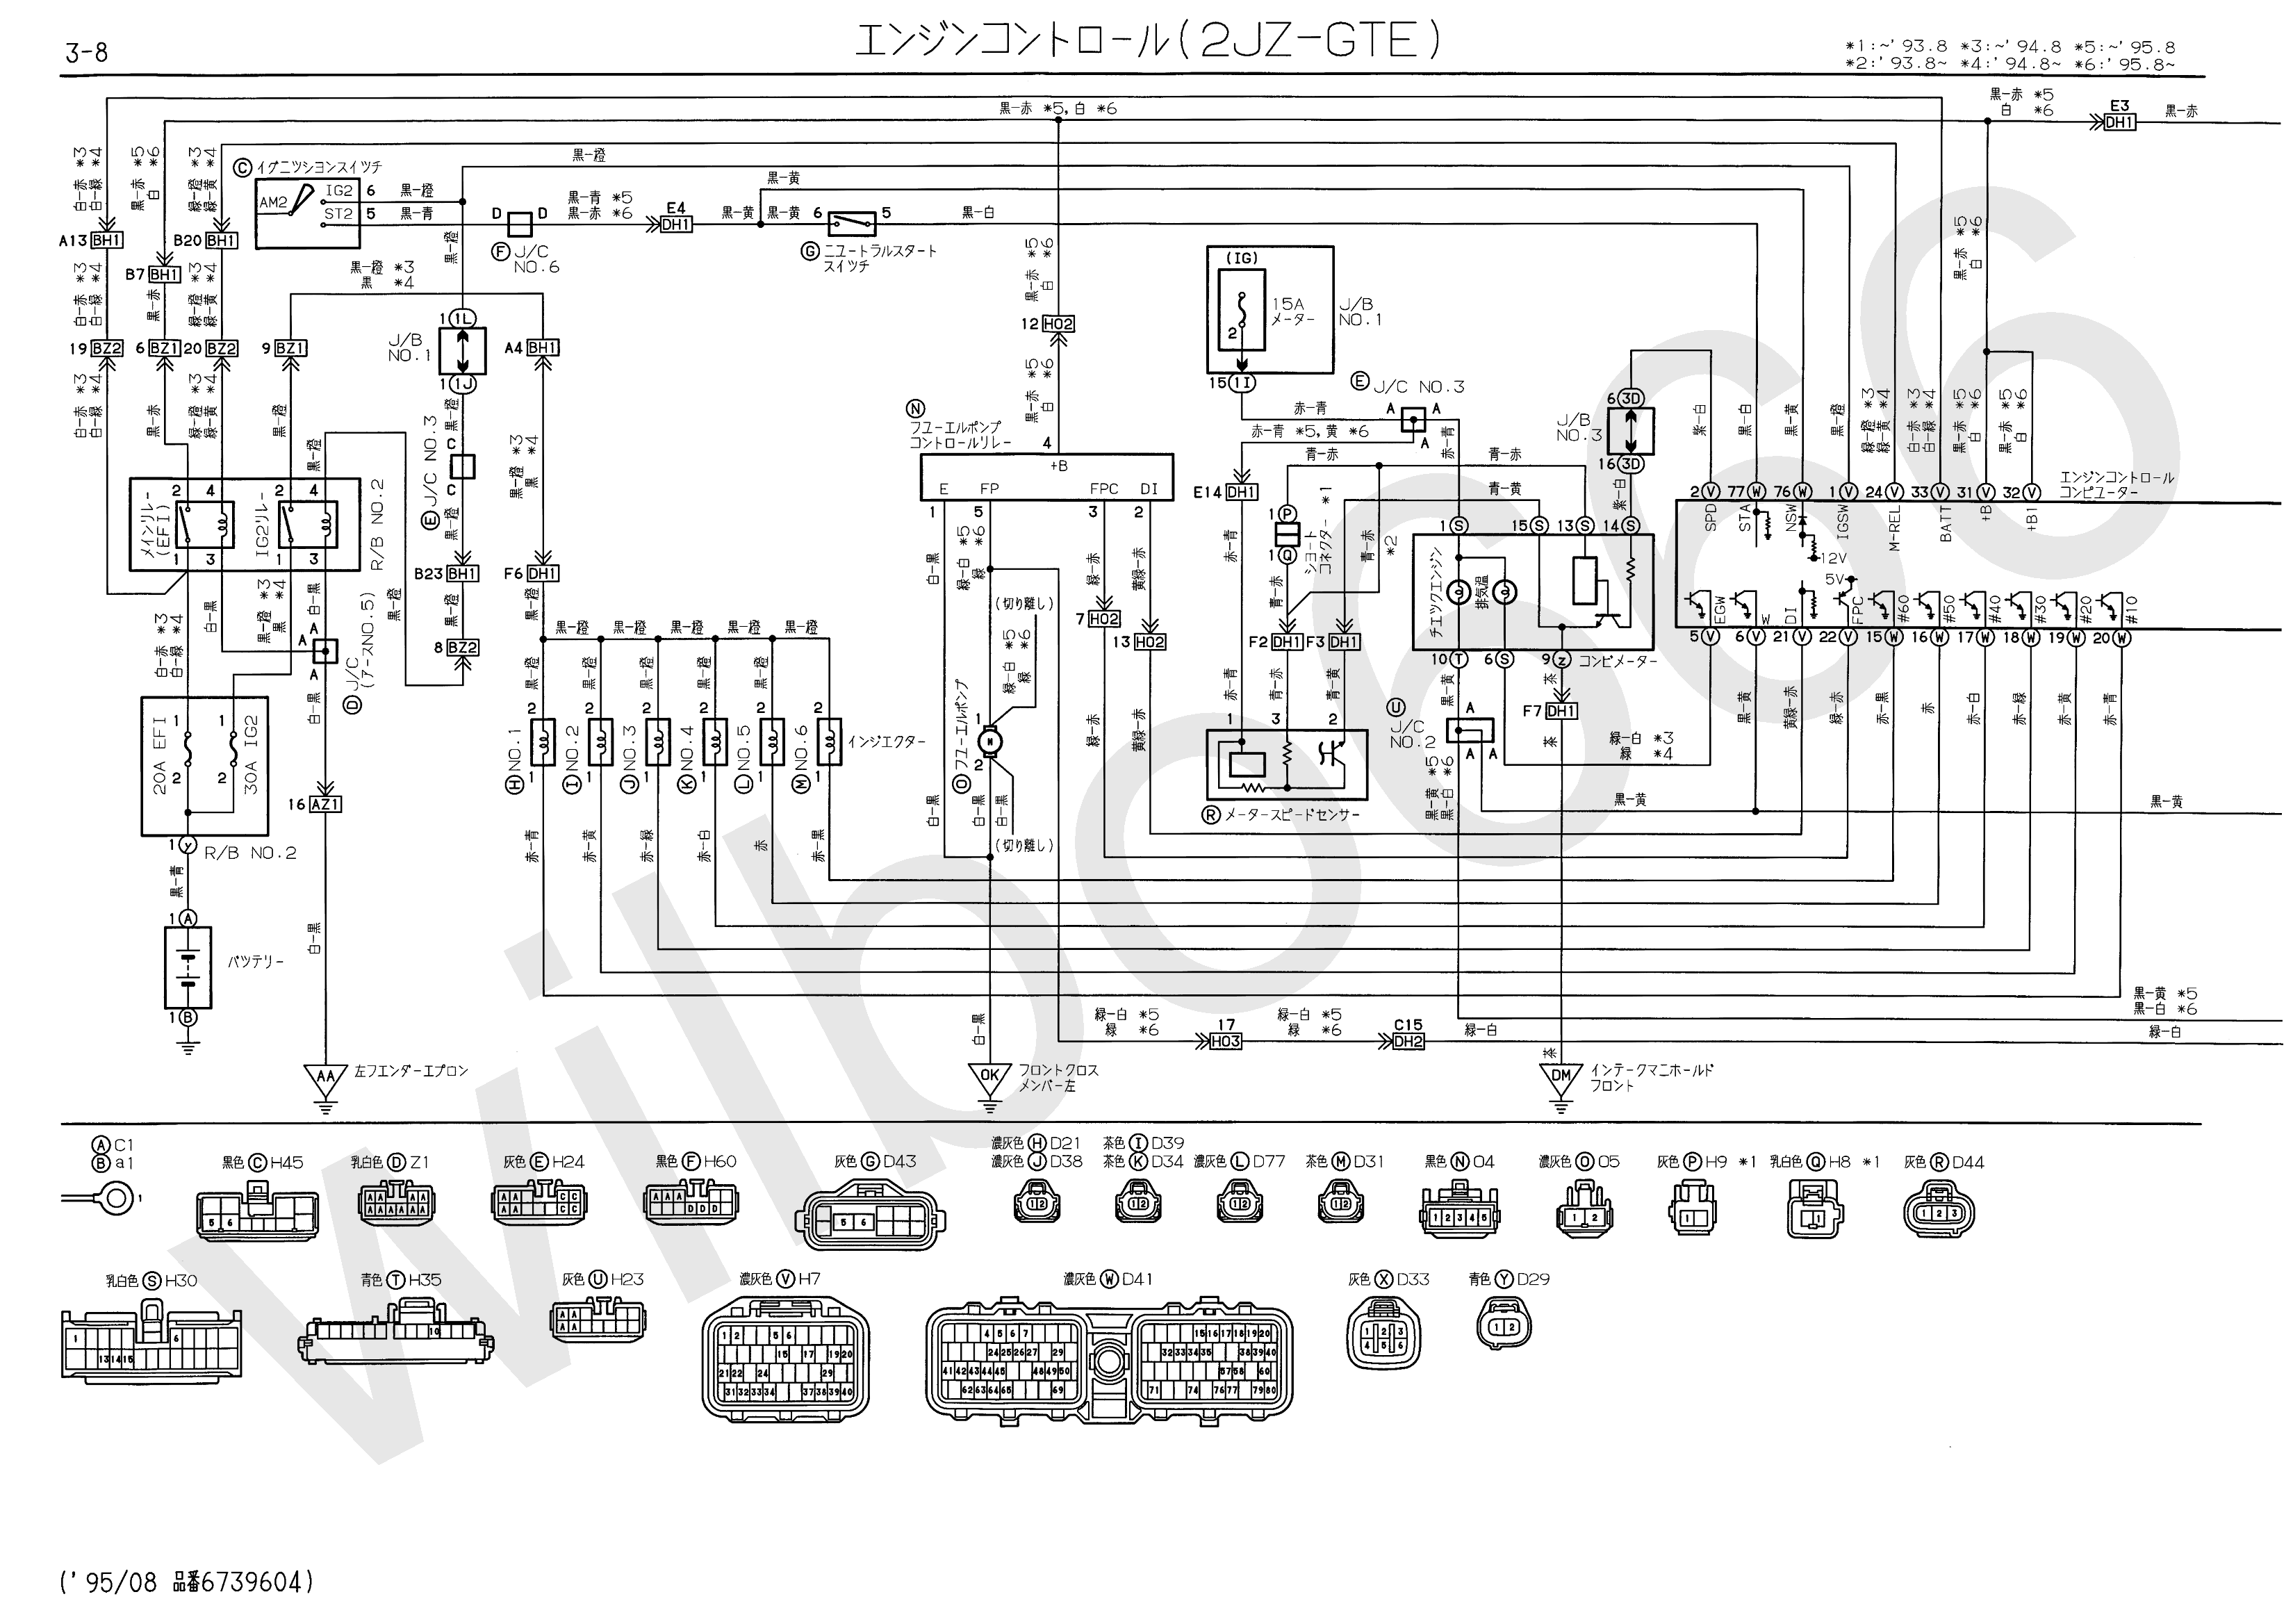 wilbo666 2JZGTE JZS147 Aristo Engine Wiring – Power Wiring Diagram